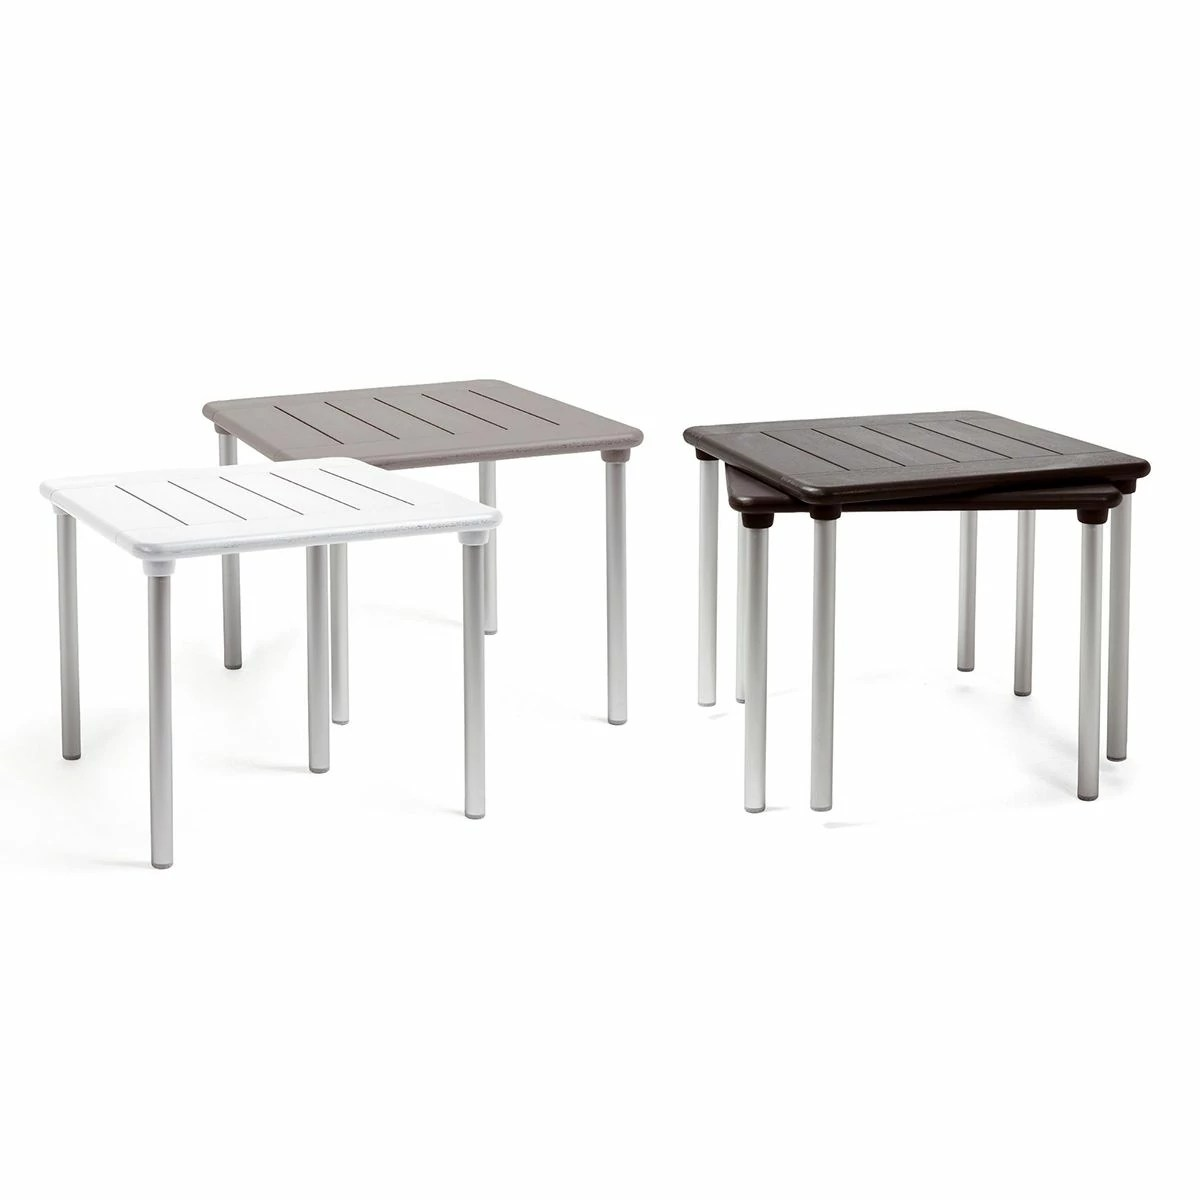 Table D Appoint Jardin Table Dappoint Jardin And Terrasse Maestrale Nardi